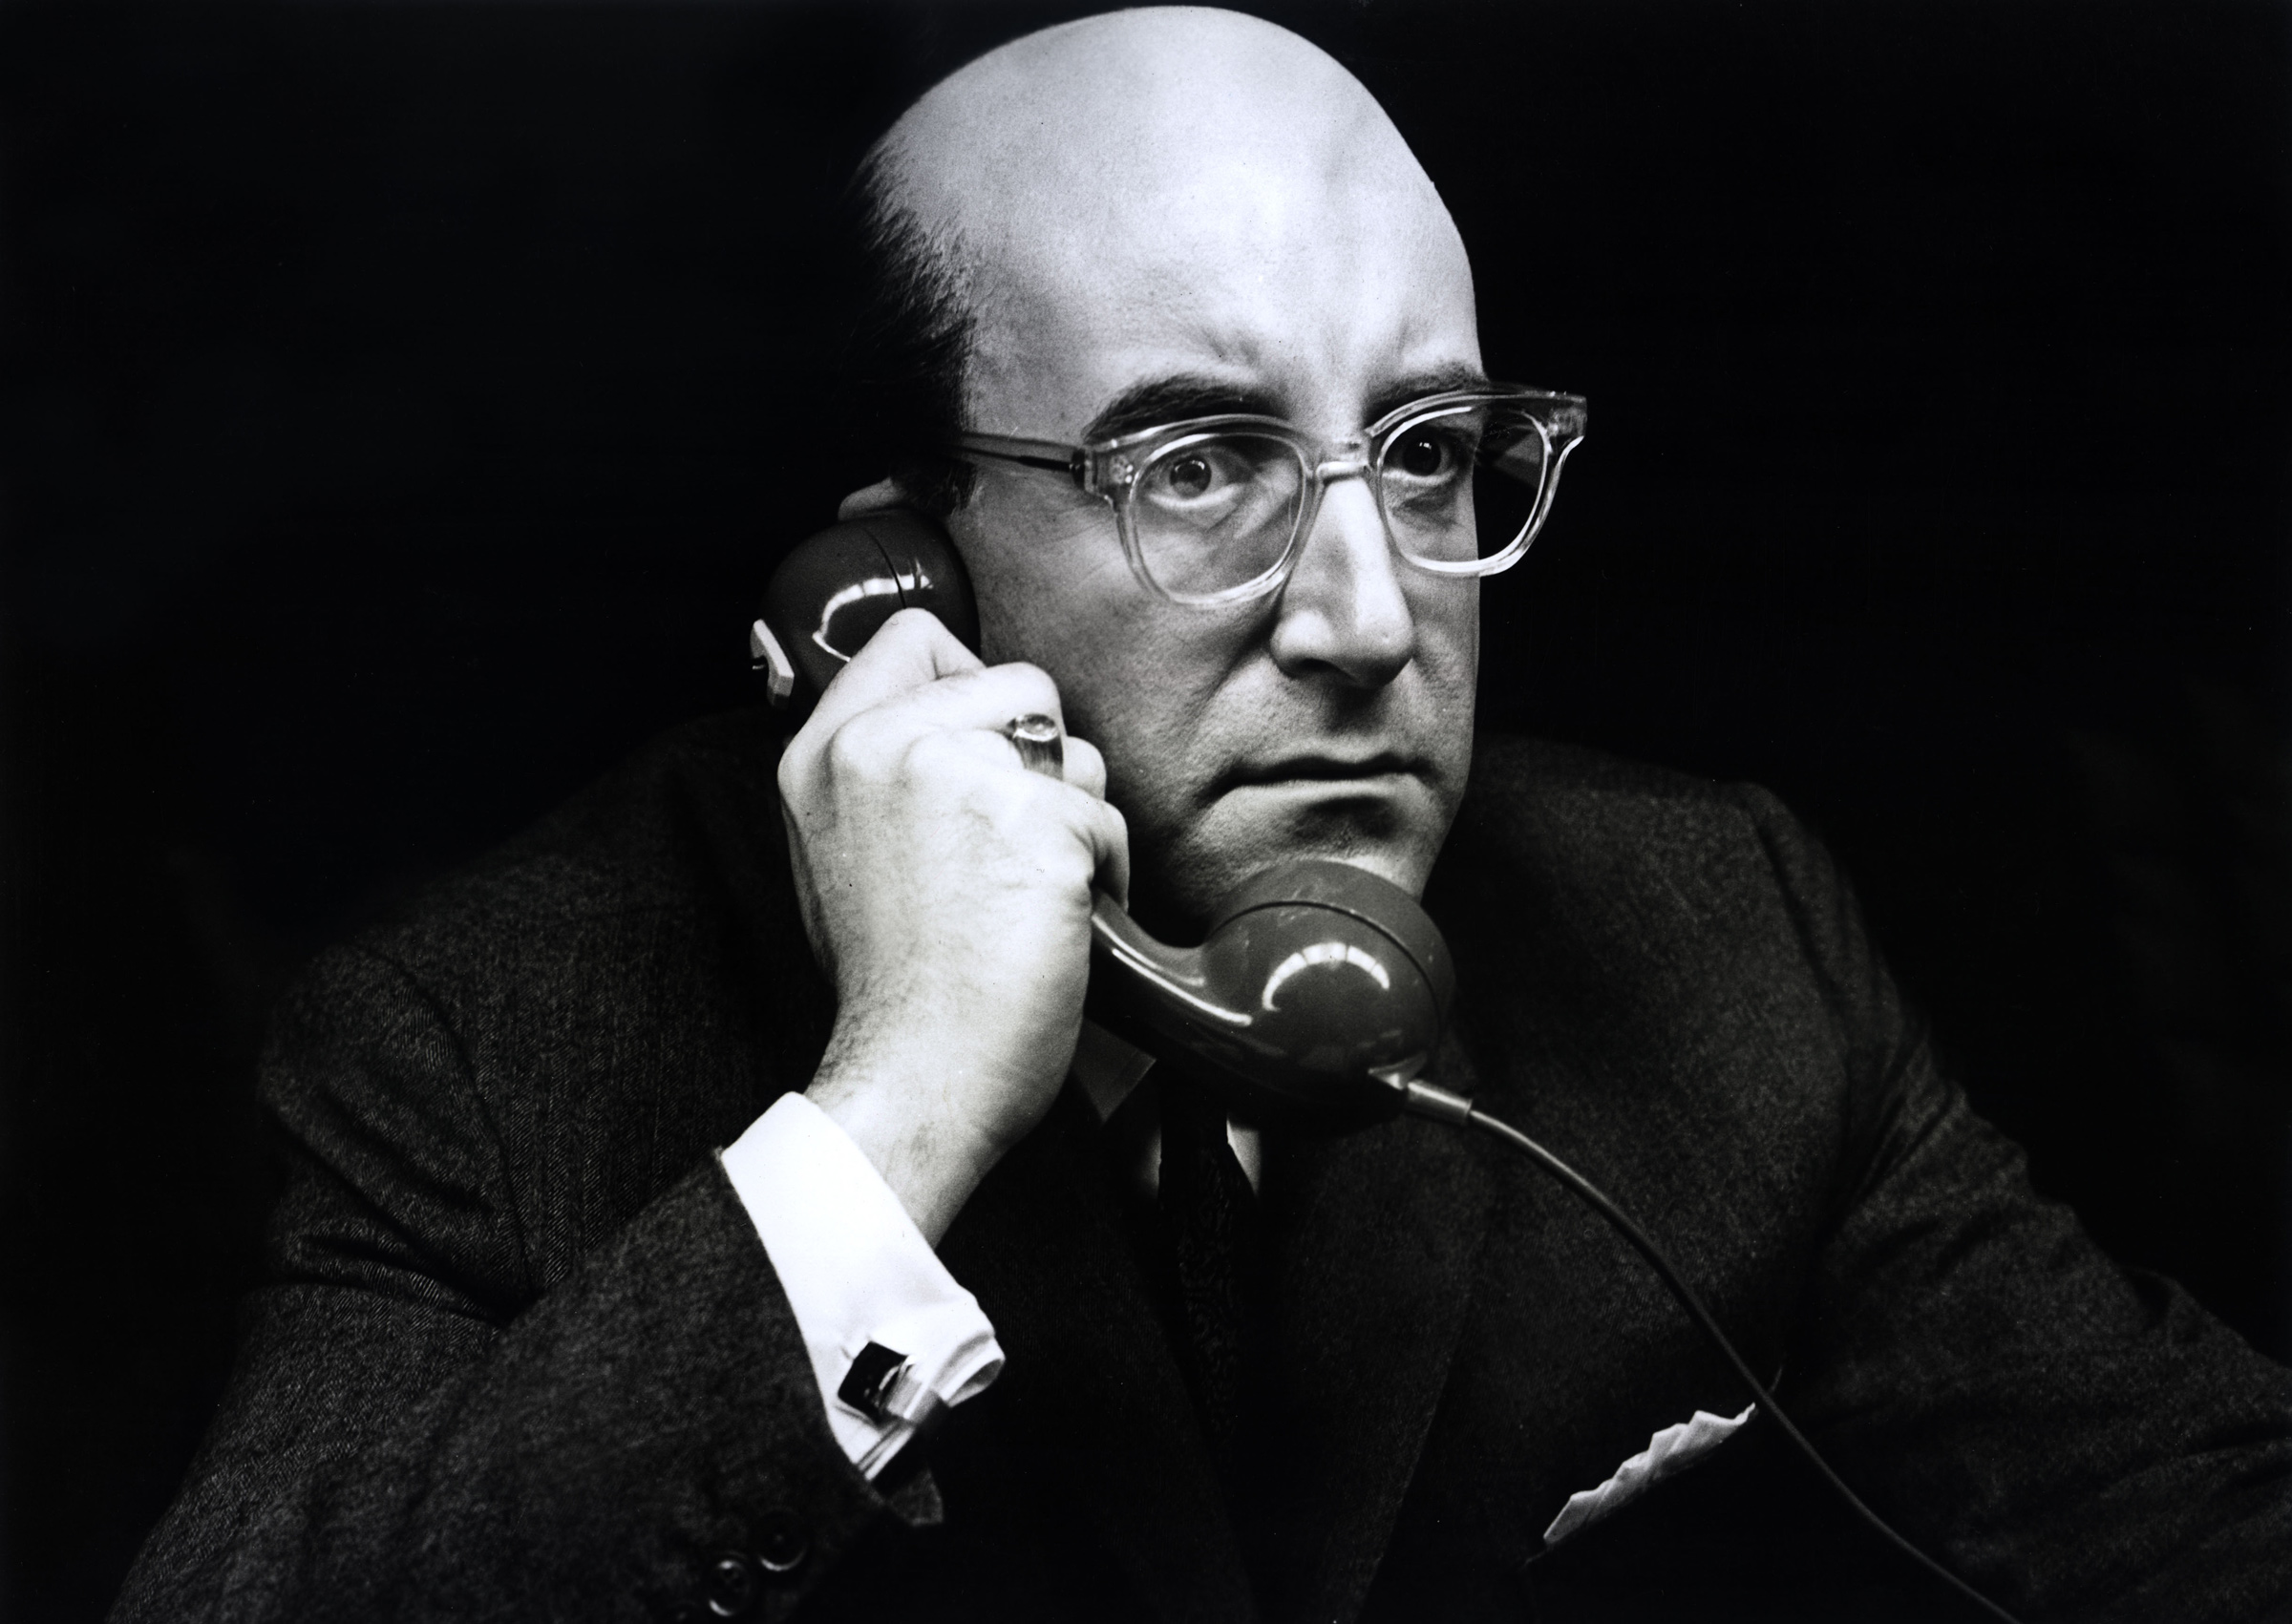 Peter Sellers as President Merkin Muffley in Dr Strangelove or How I Learned to Stop Worrying and Love the Bomb (1964)